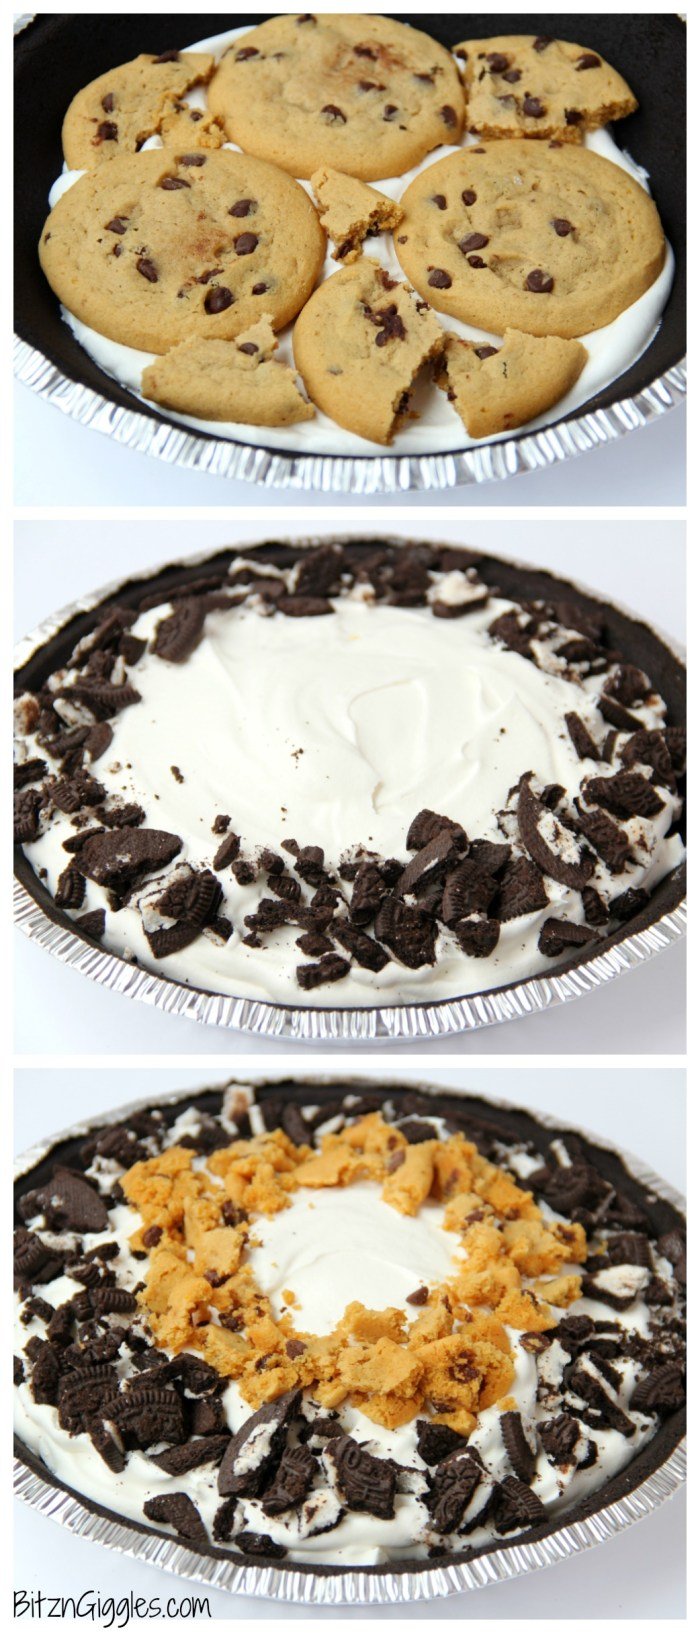 Milk and Cookies Pie - Bitz & Giggles